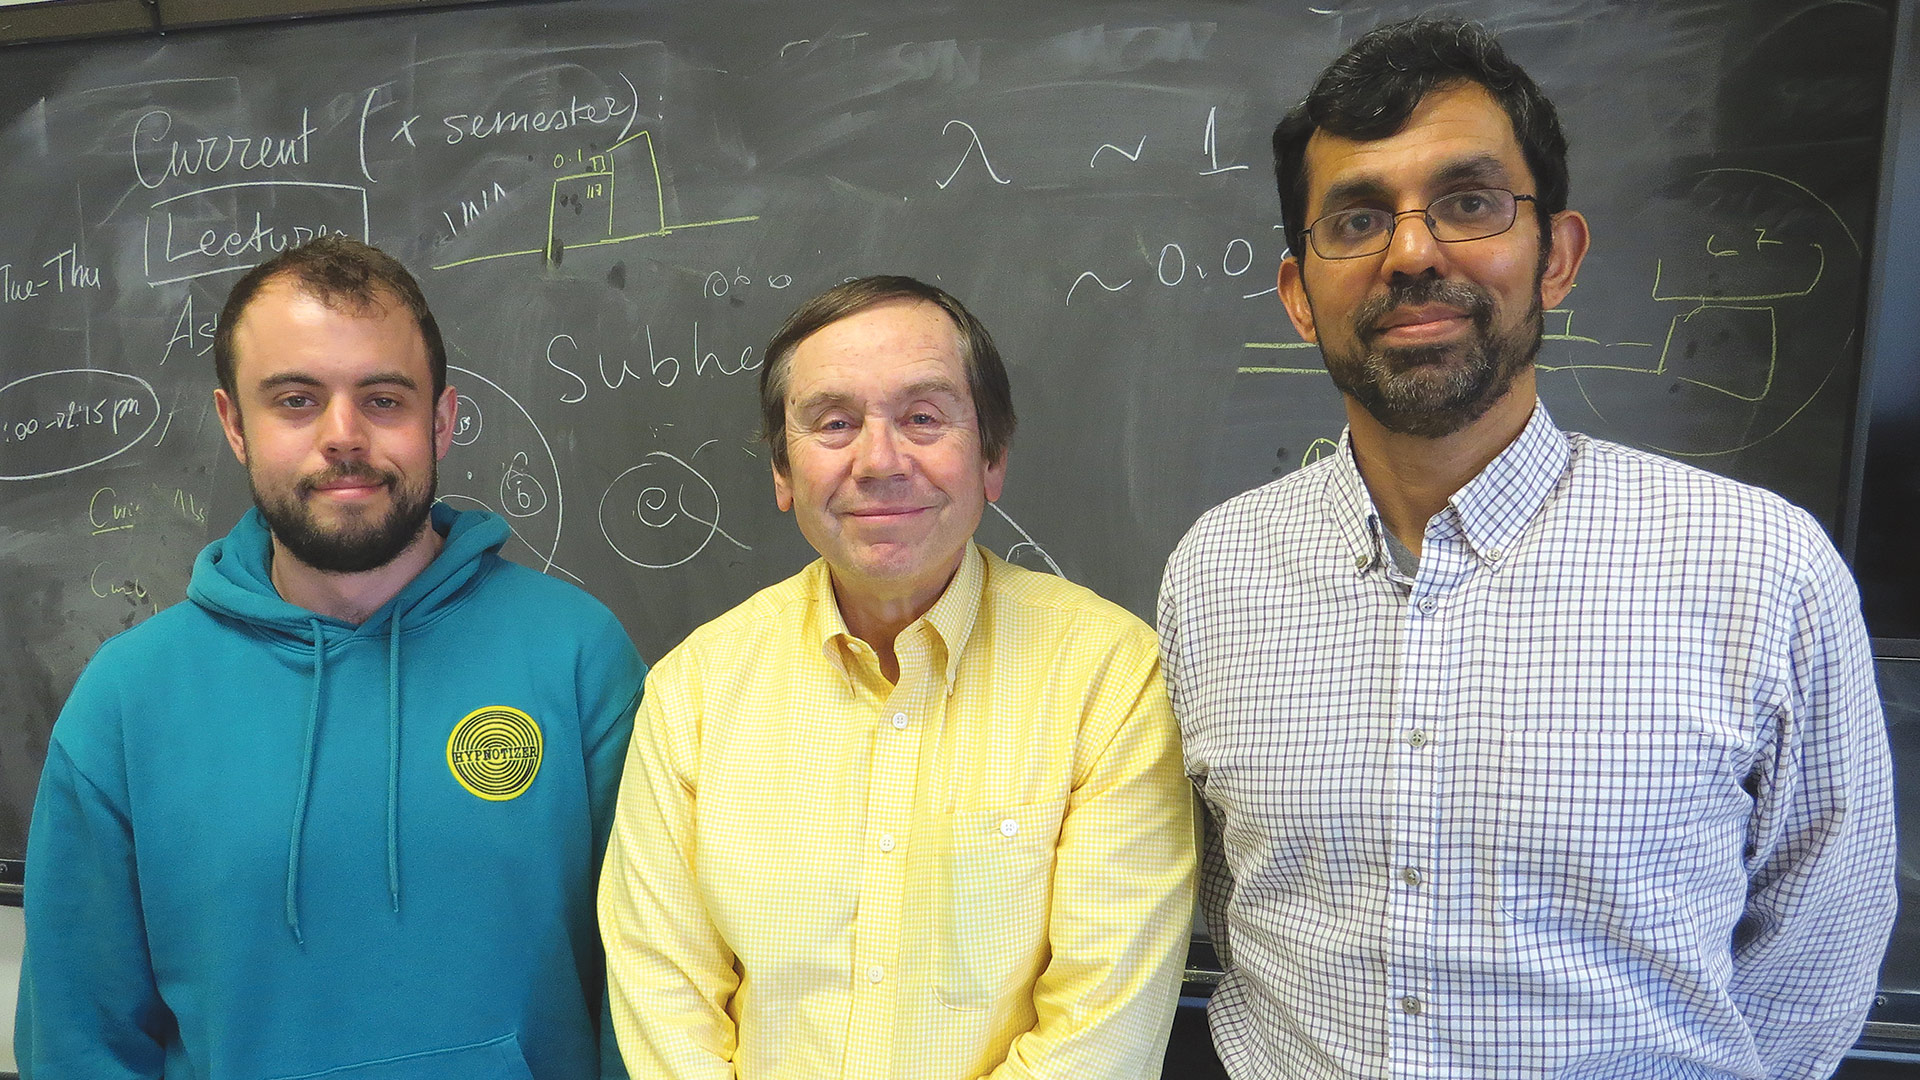 From left: Aleks Popsefanija, Gopal Narayanan, and Peter Schloerb, members of the team at UMass Amherst that helped capture that first image of a black hole.